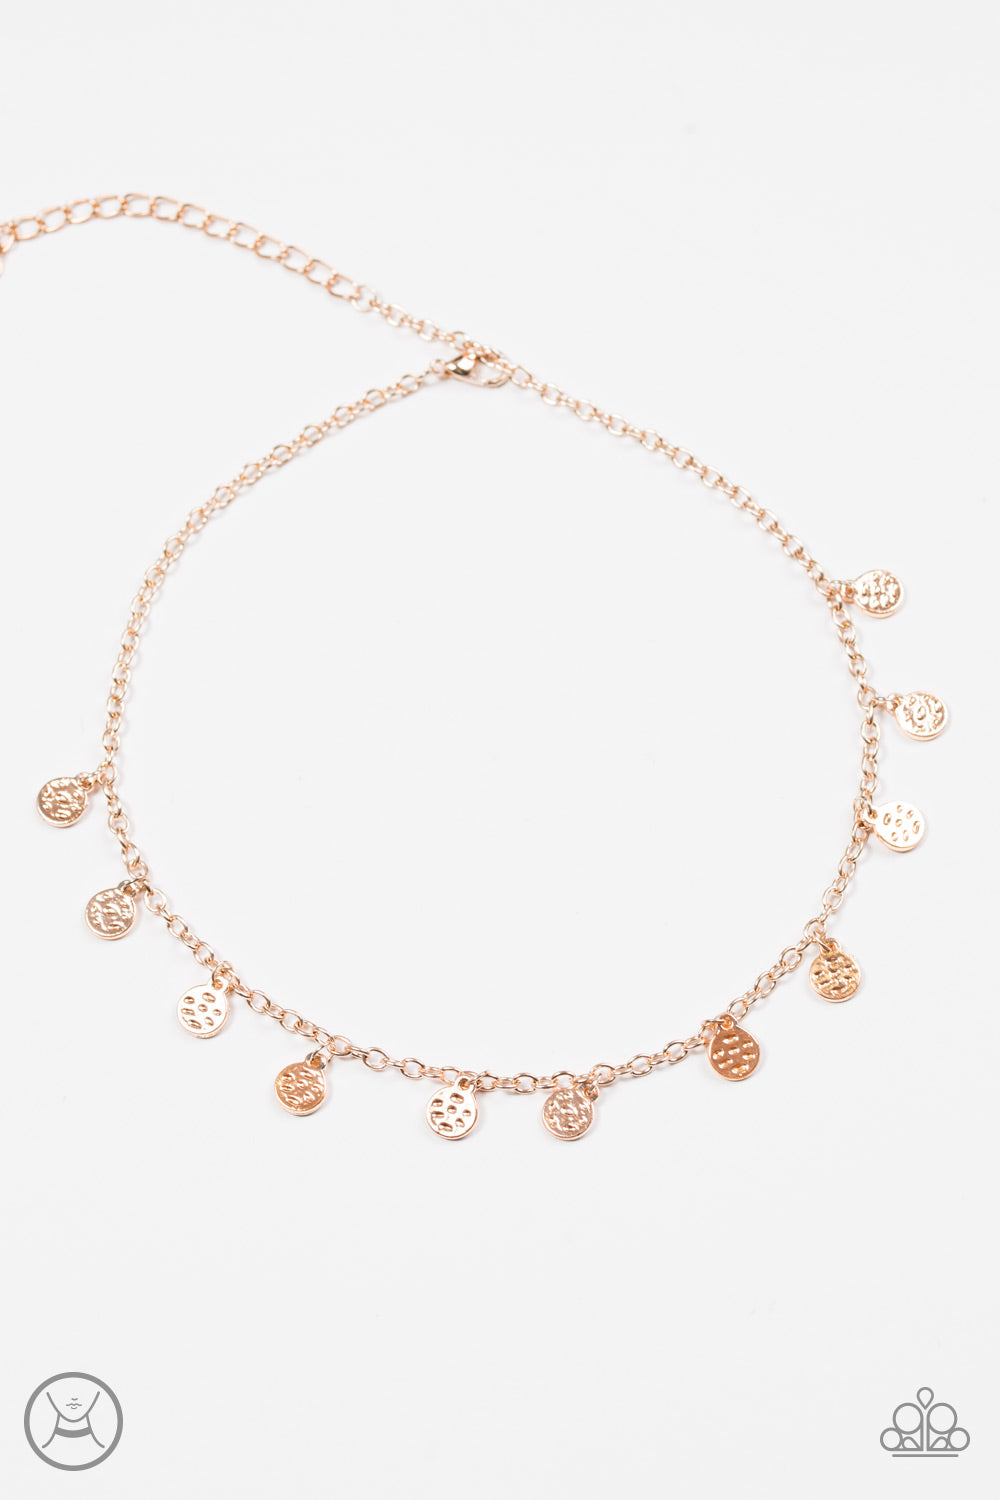 five-dollar-jewelry-the-fringe-zone-rose-gold-paparazzi-accessories